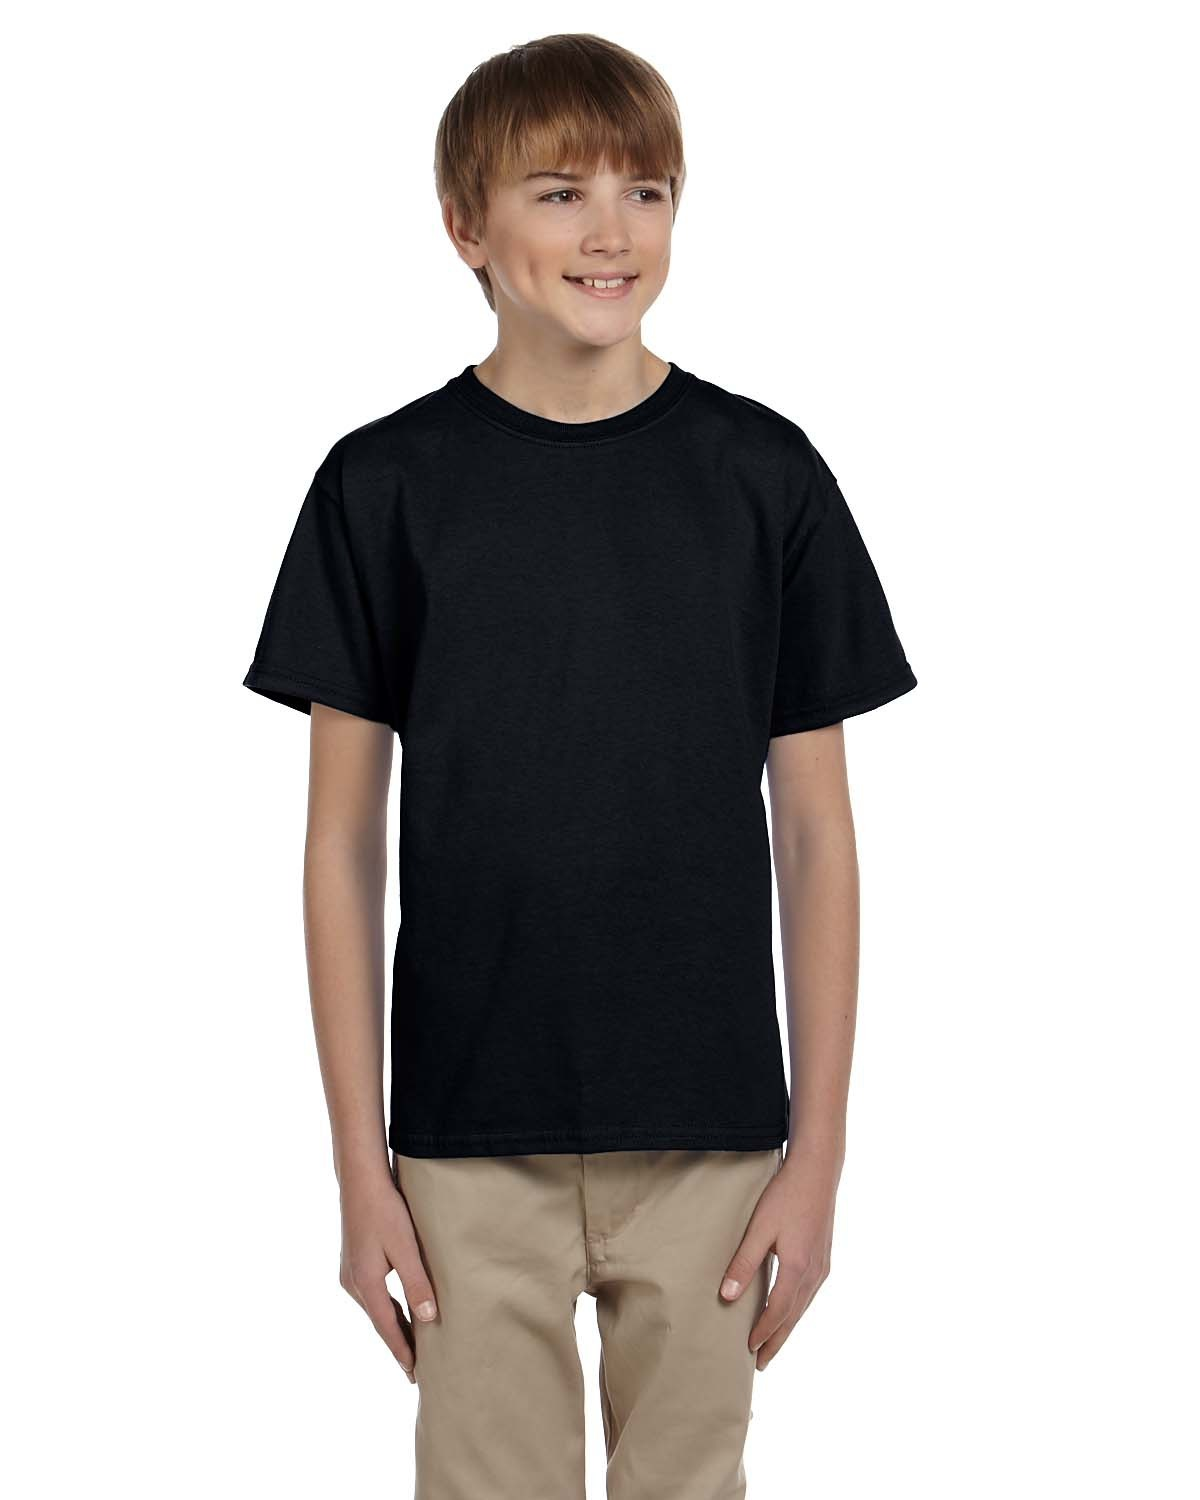 Childrens Black T Shirt